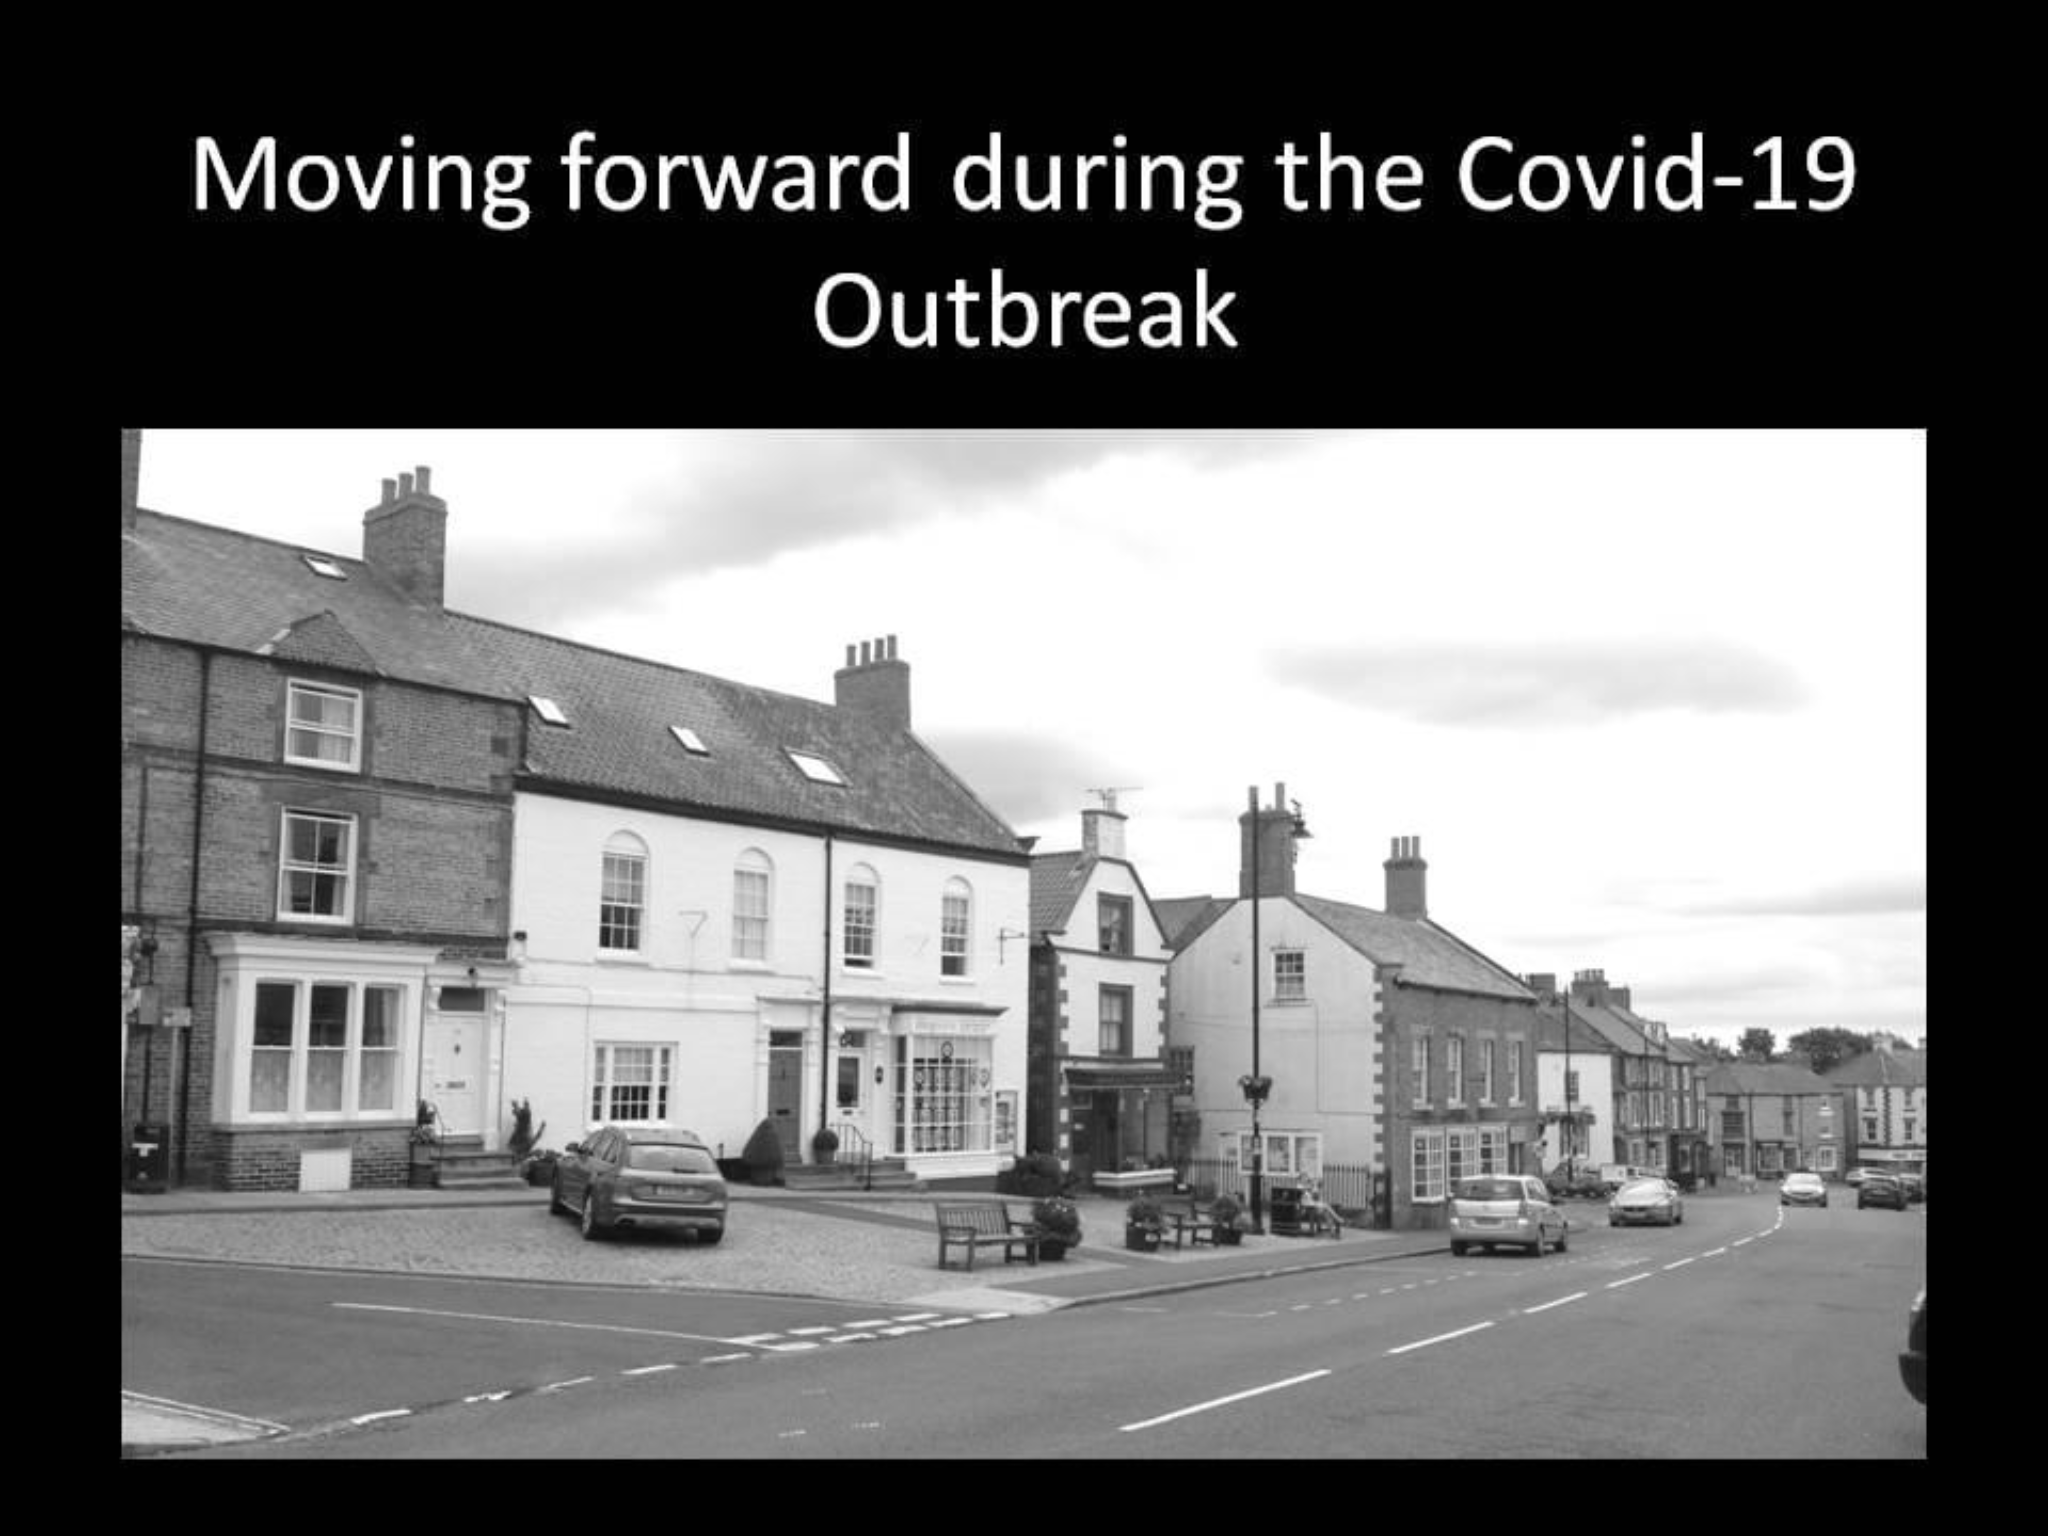 Moving Forward during the Covid-19 Outbreak